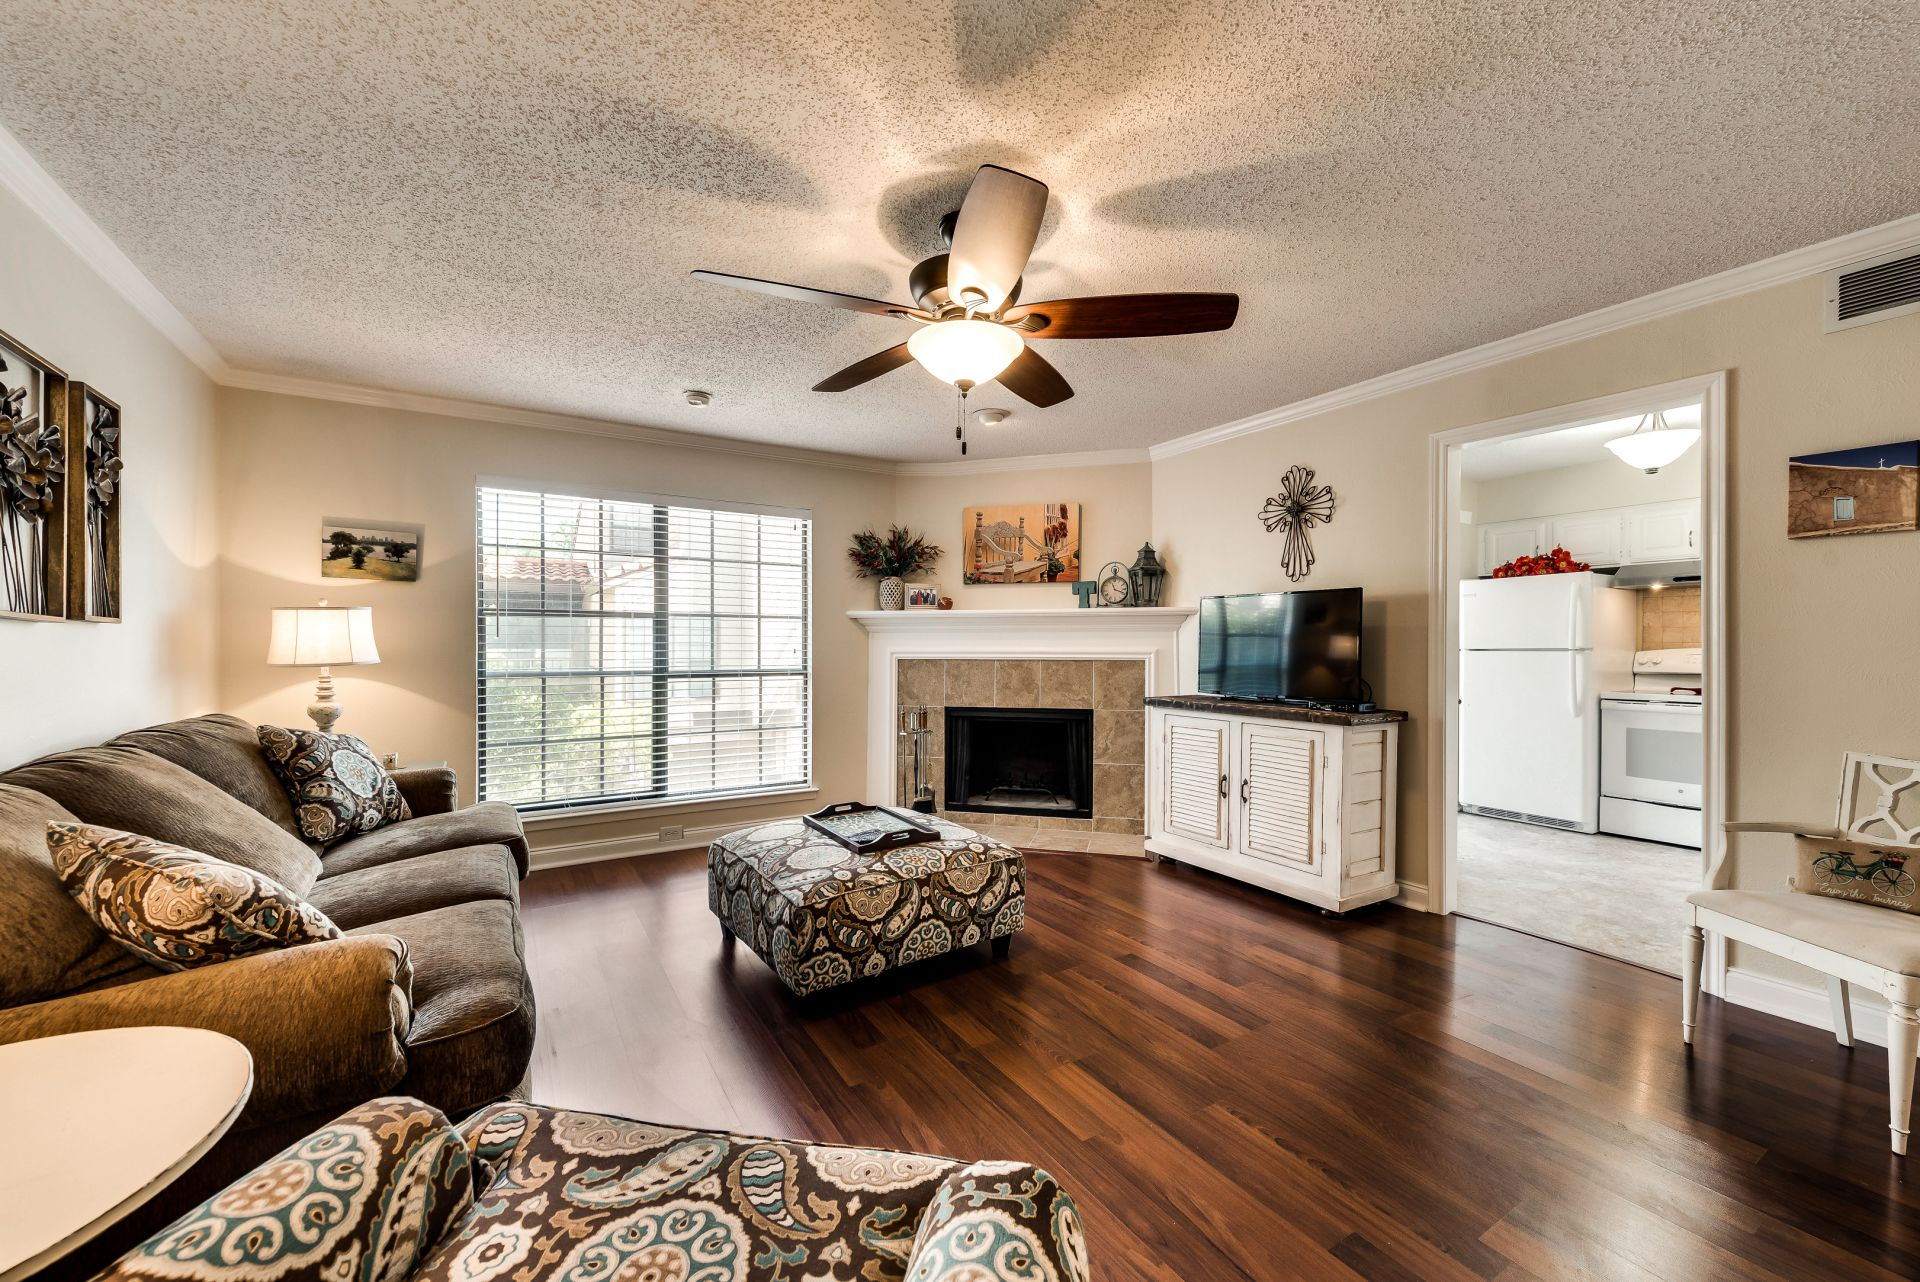 Beautiful 2 Bedroom, 2.5 Bath in Gated Community in Dallas!